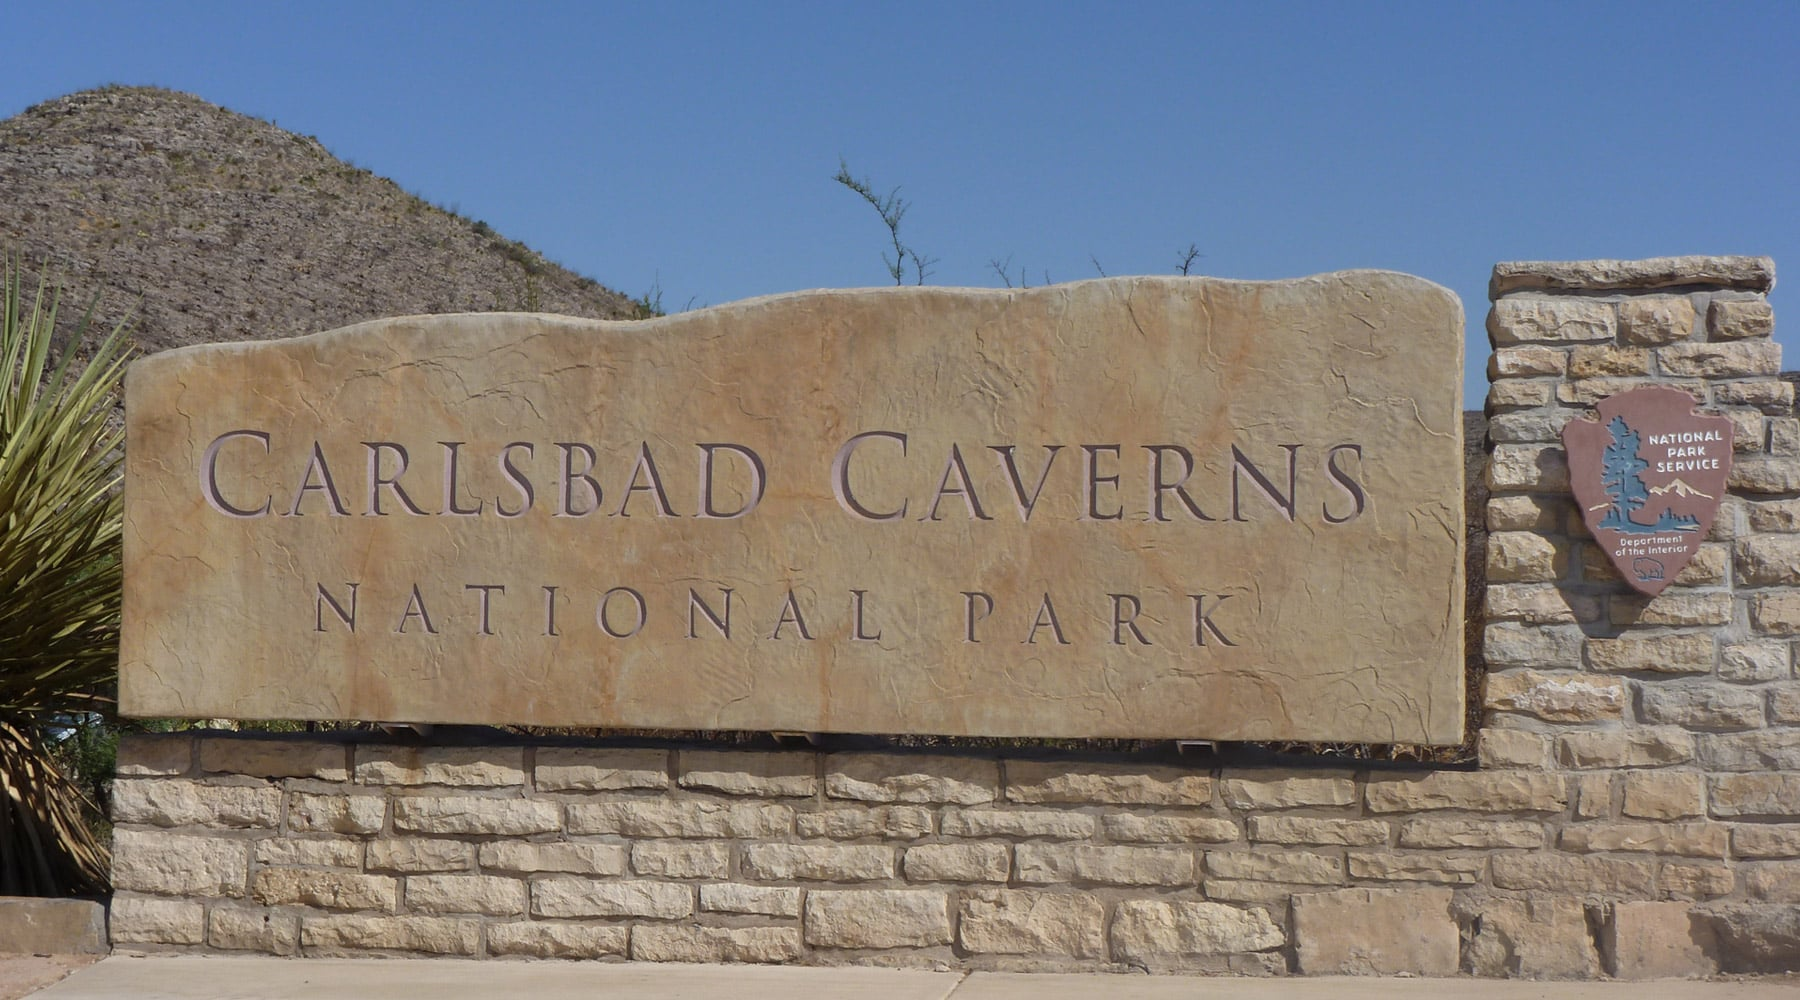 Carlsbad Caverns National Park in New Mexico, USA 1